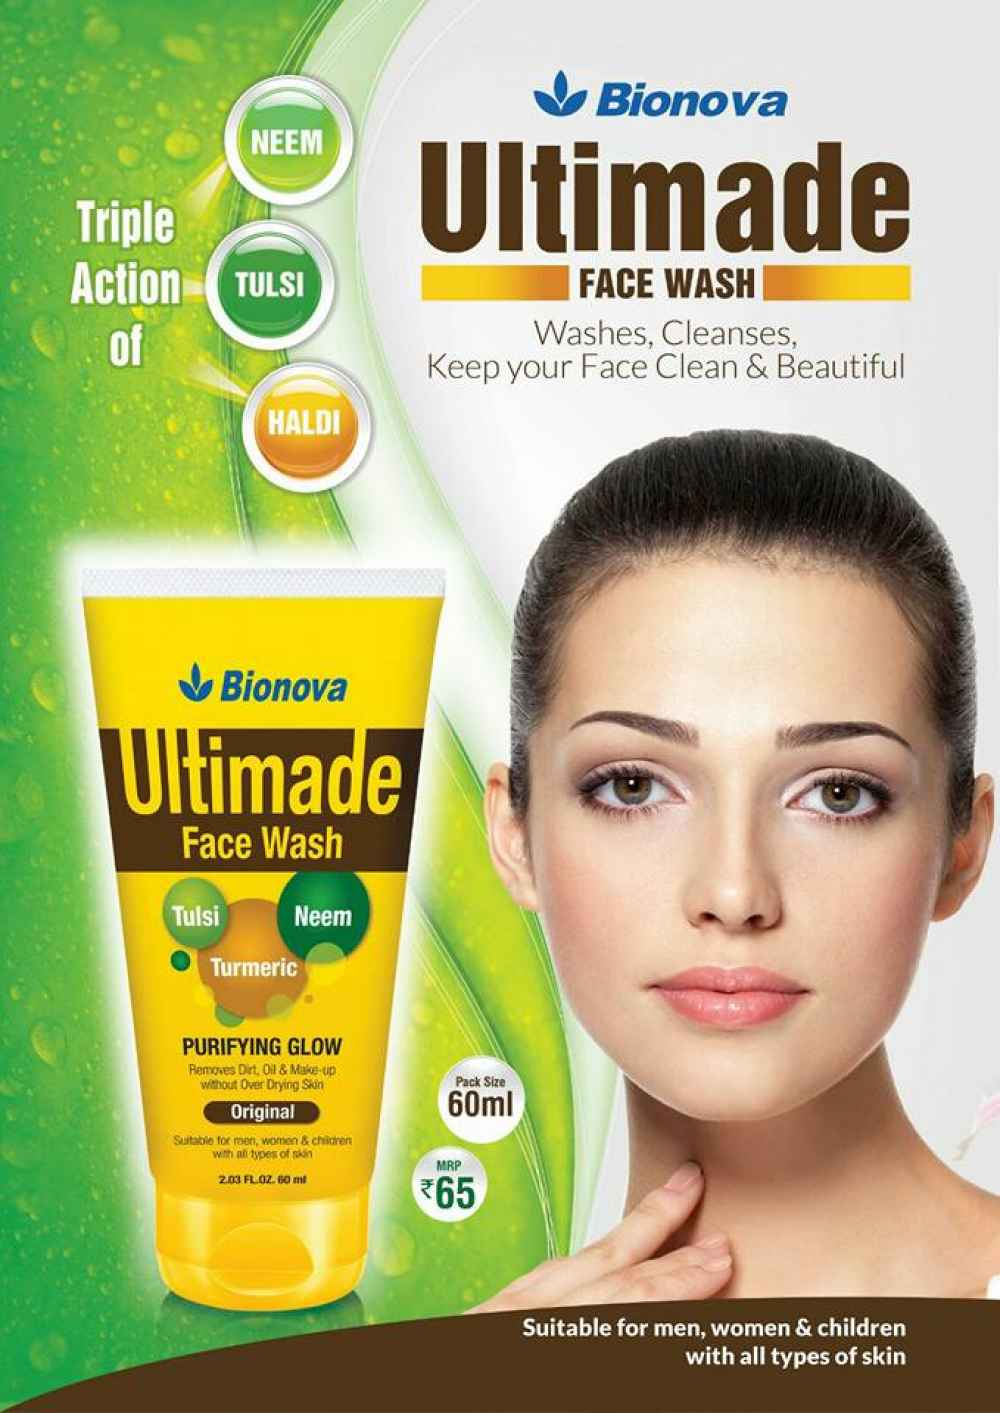 Ultimade Face Wash with Neem, Tulasi and Turmeric skin purifying face wash - 60ml